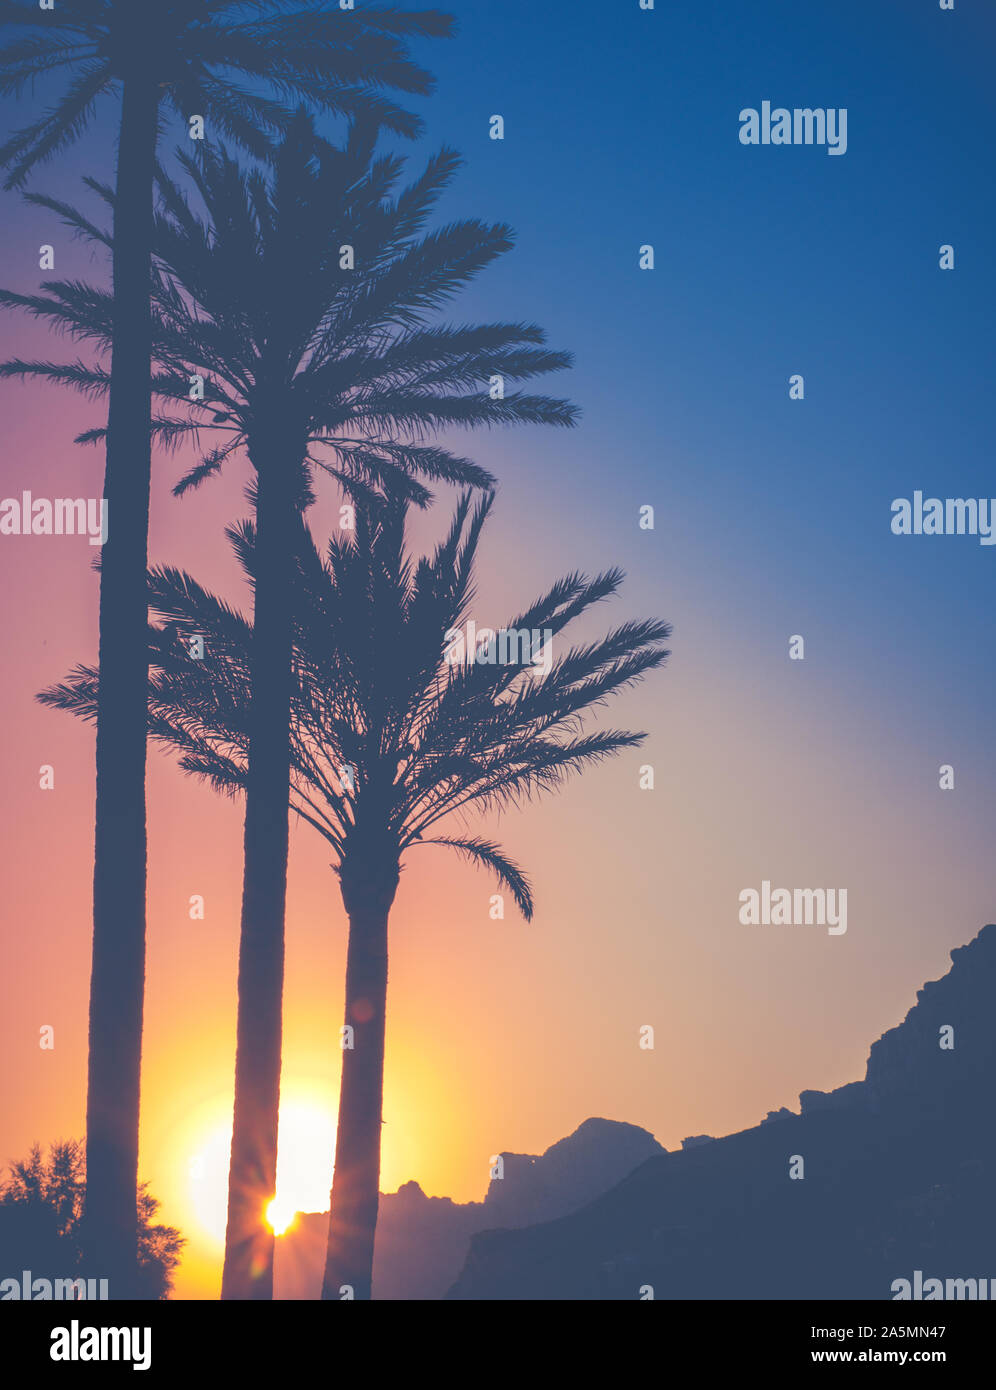 The Sun Behind Palm Trees And Mountains During A Tropical Sunset In Hawaii Stock Photo